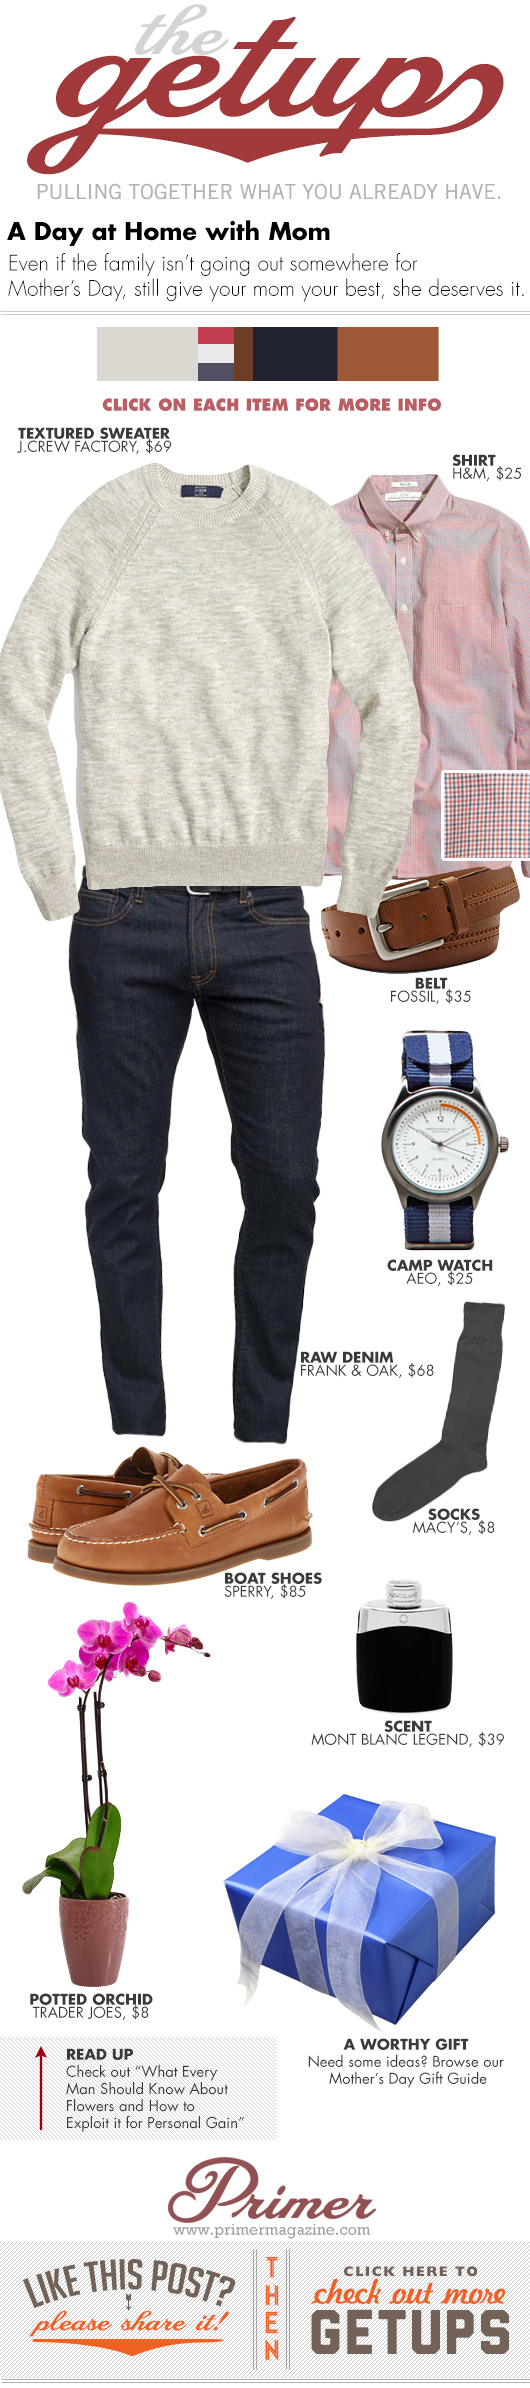 Getup a Day at home with Mom - Sweater, check shirt, dark jeans, boat shoes